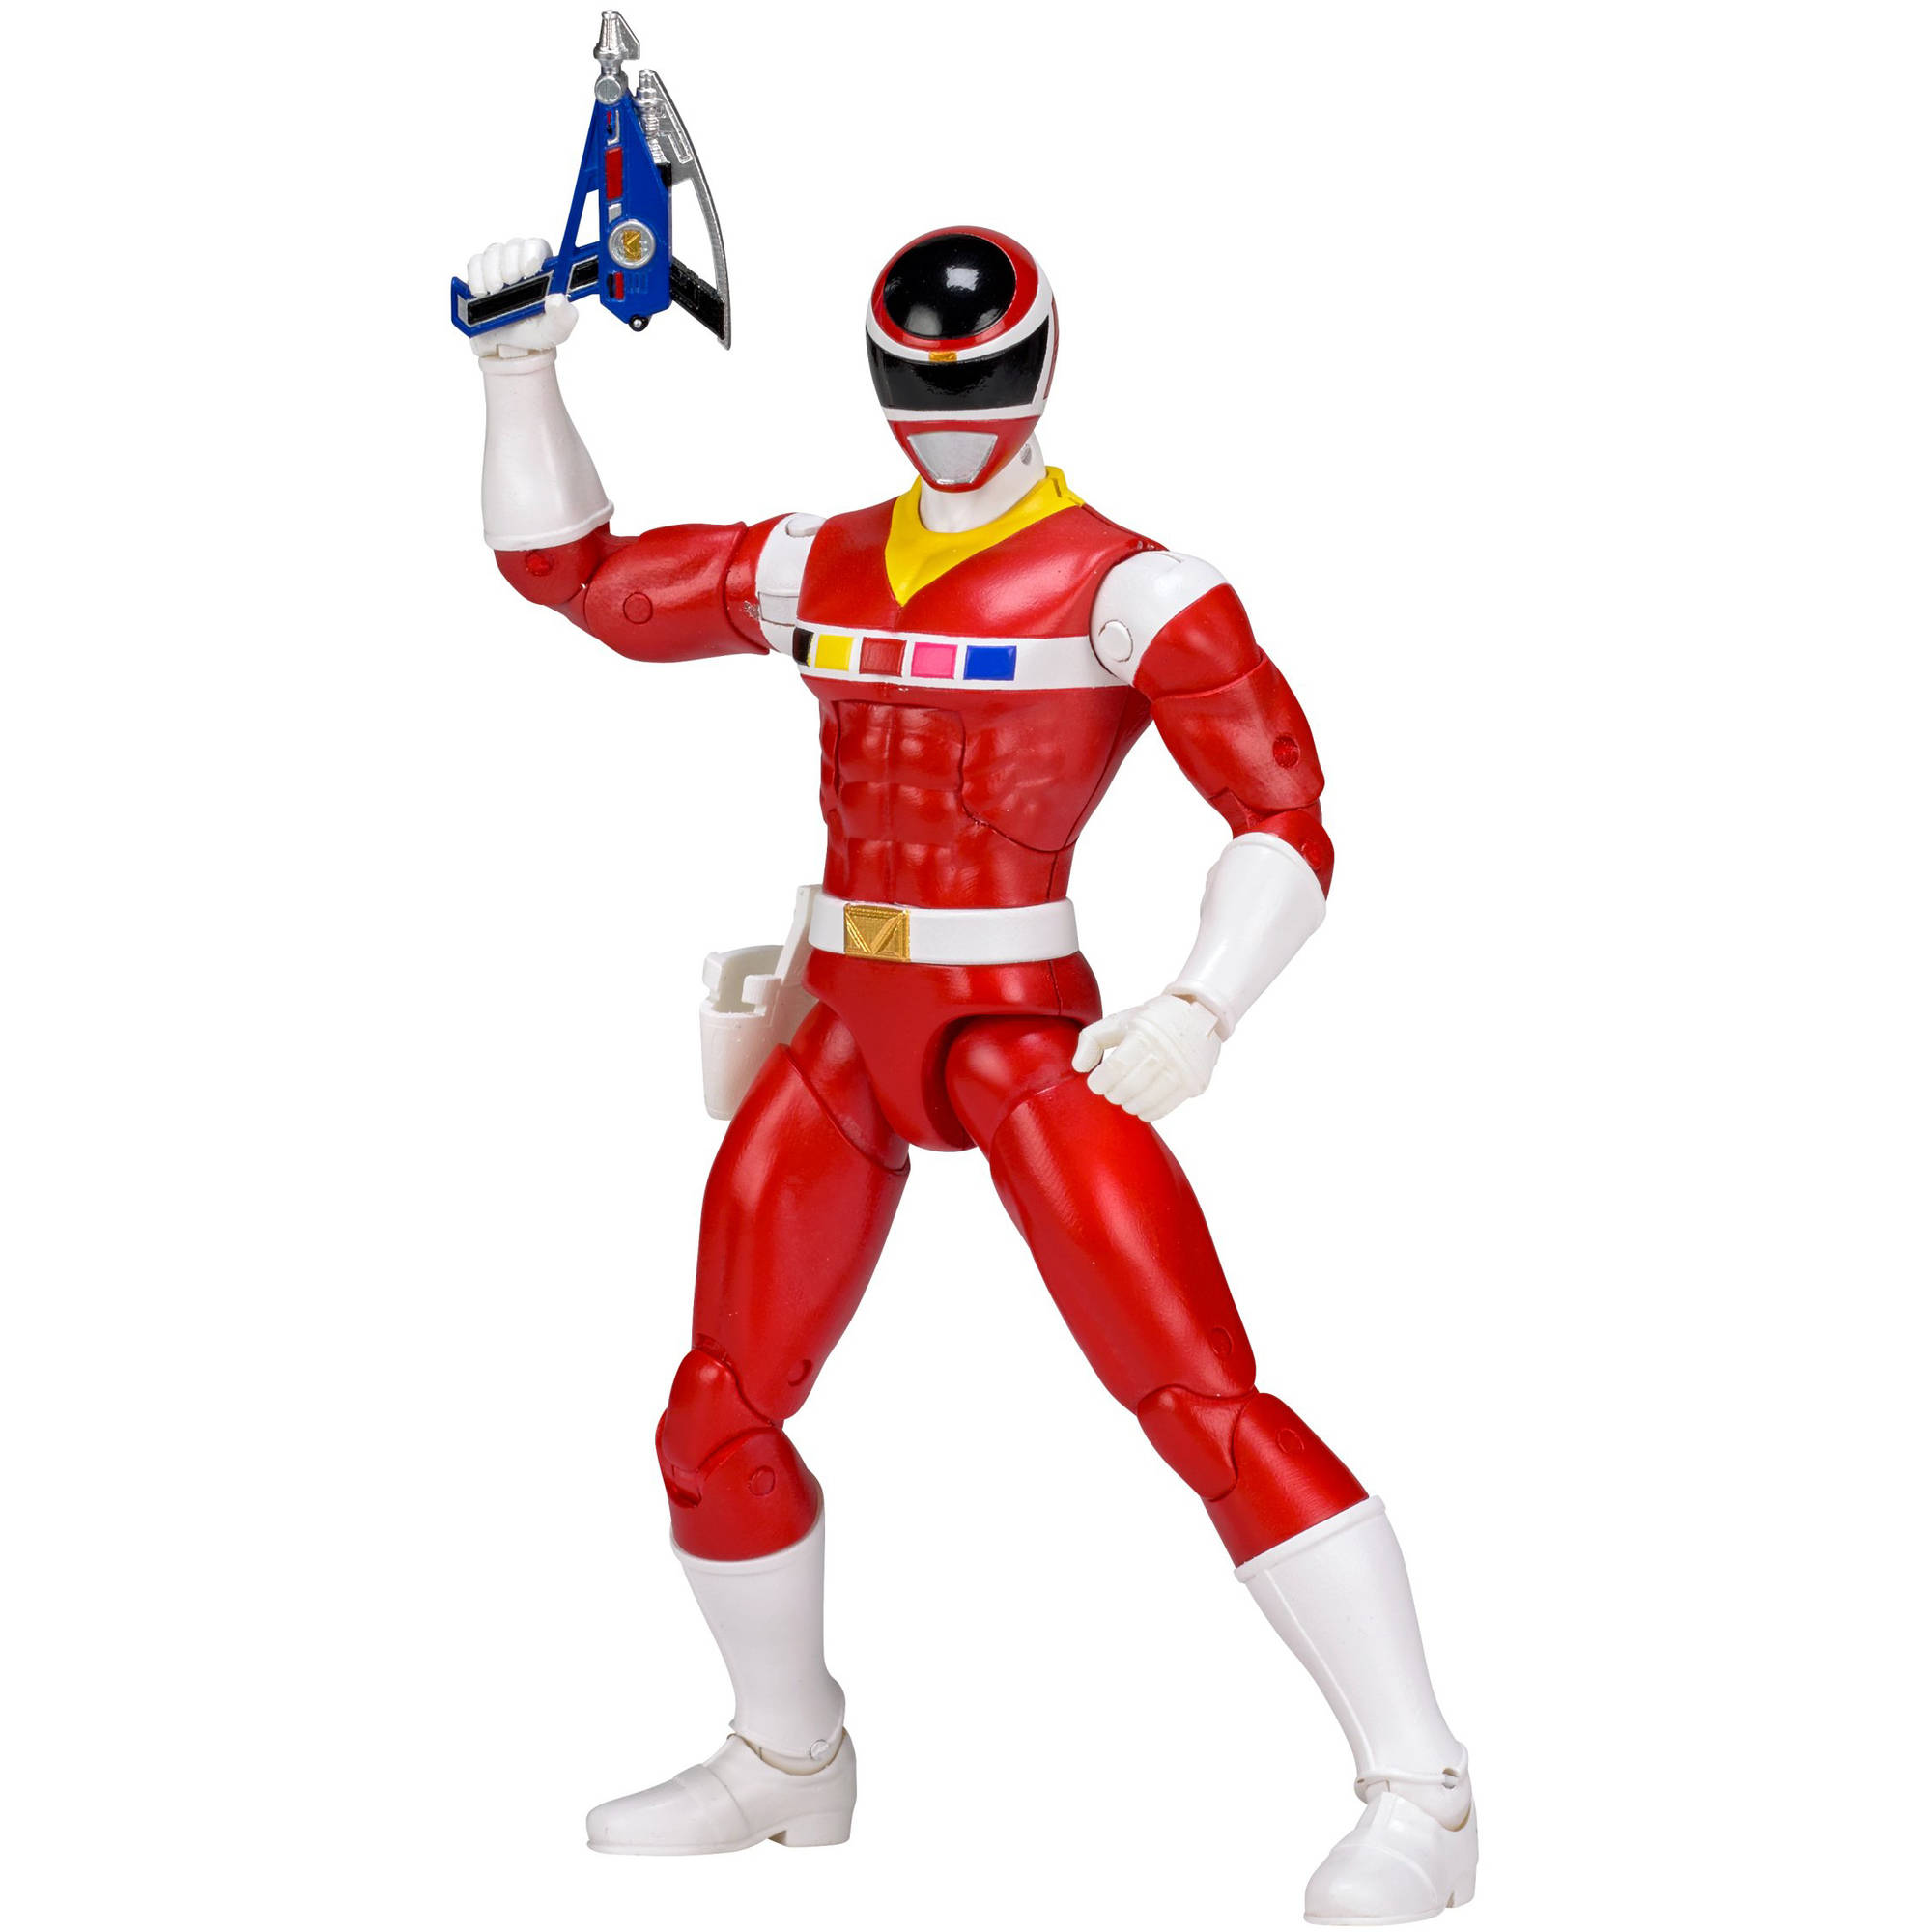 Power Rangers Legacy Mighty Morphin Movie Red Ranger by Bandai America